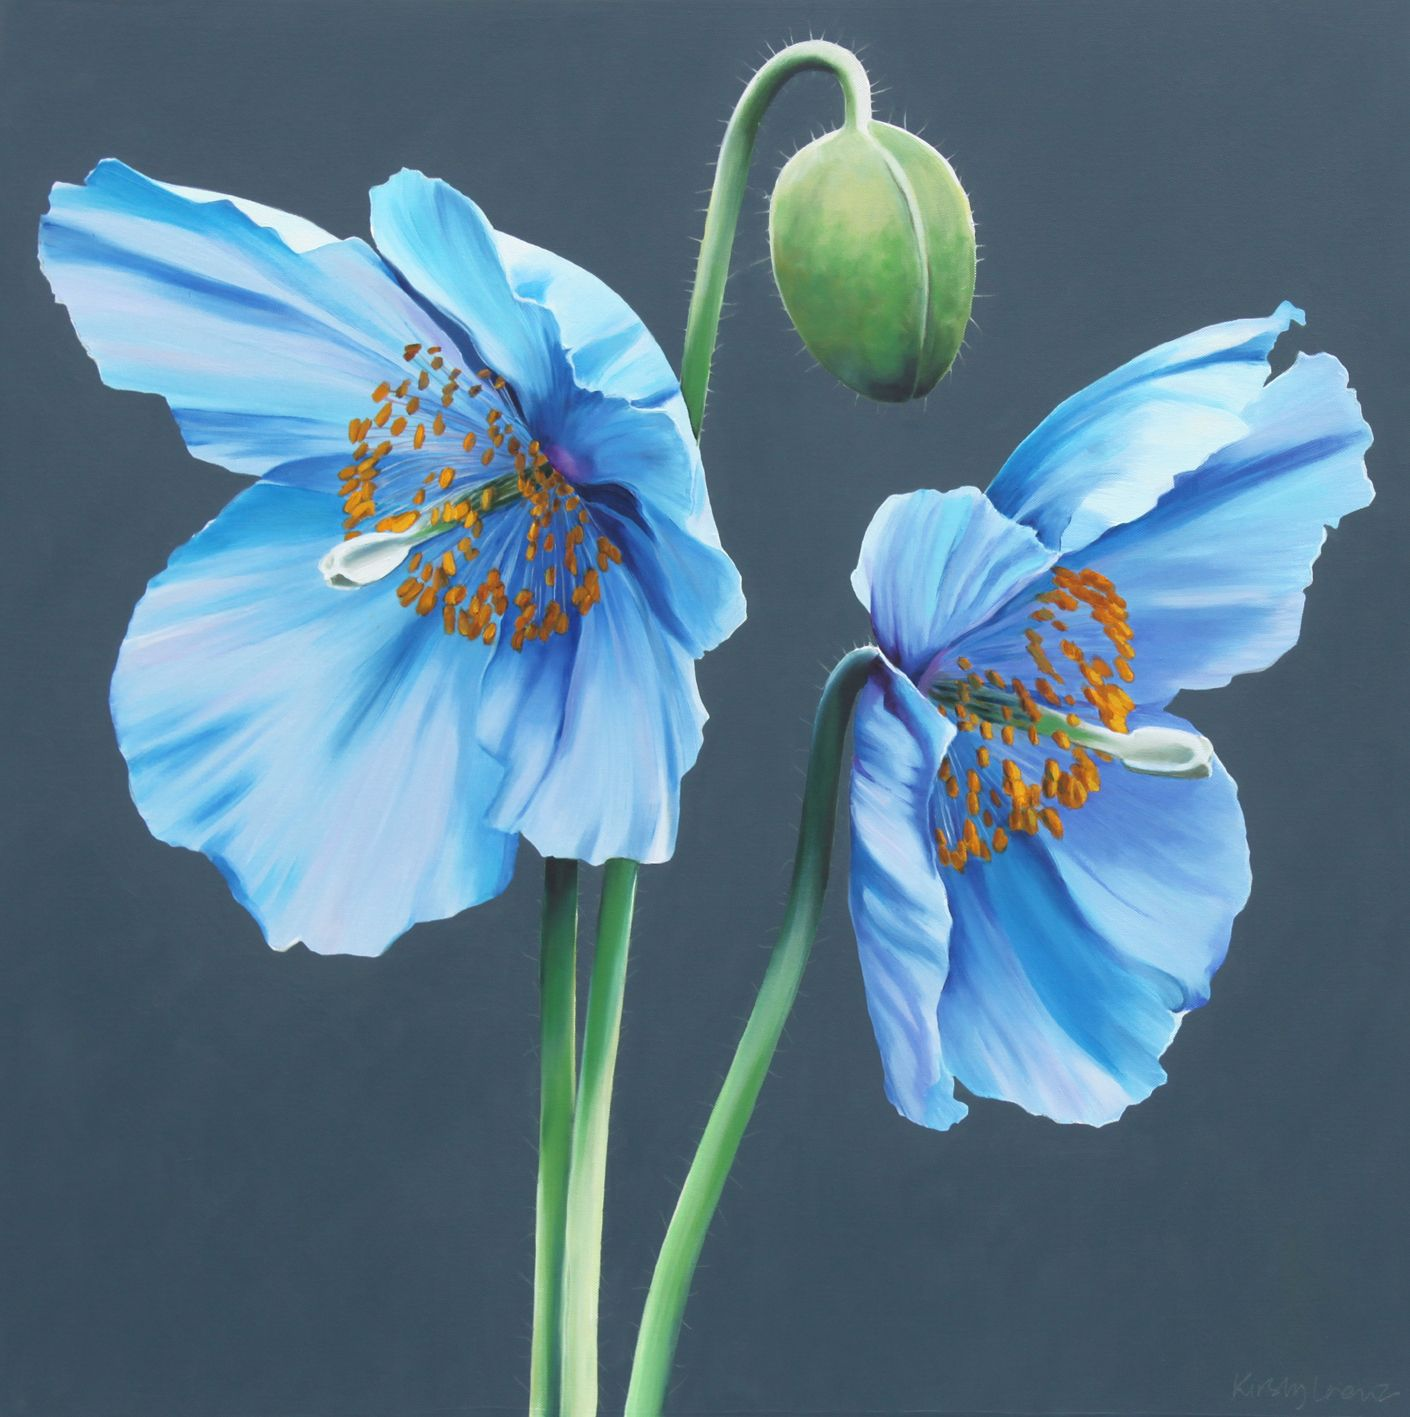 Pin By Neva Pead On Color Blue Pinterest Blue Poppy Flowers And